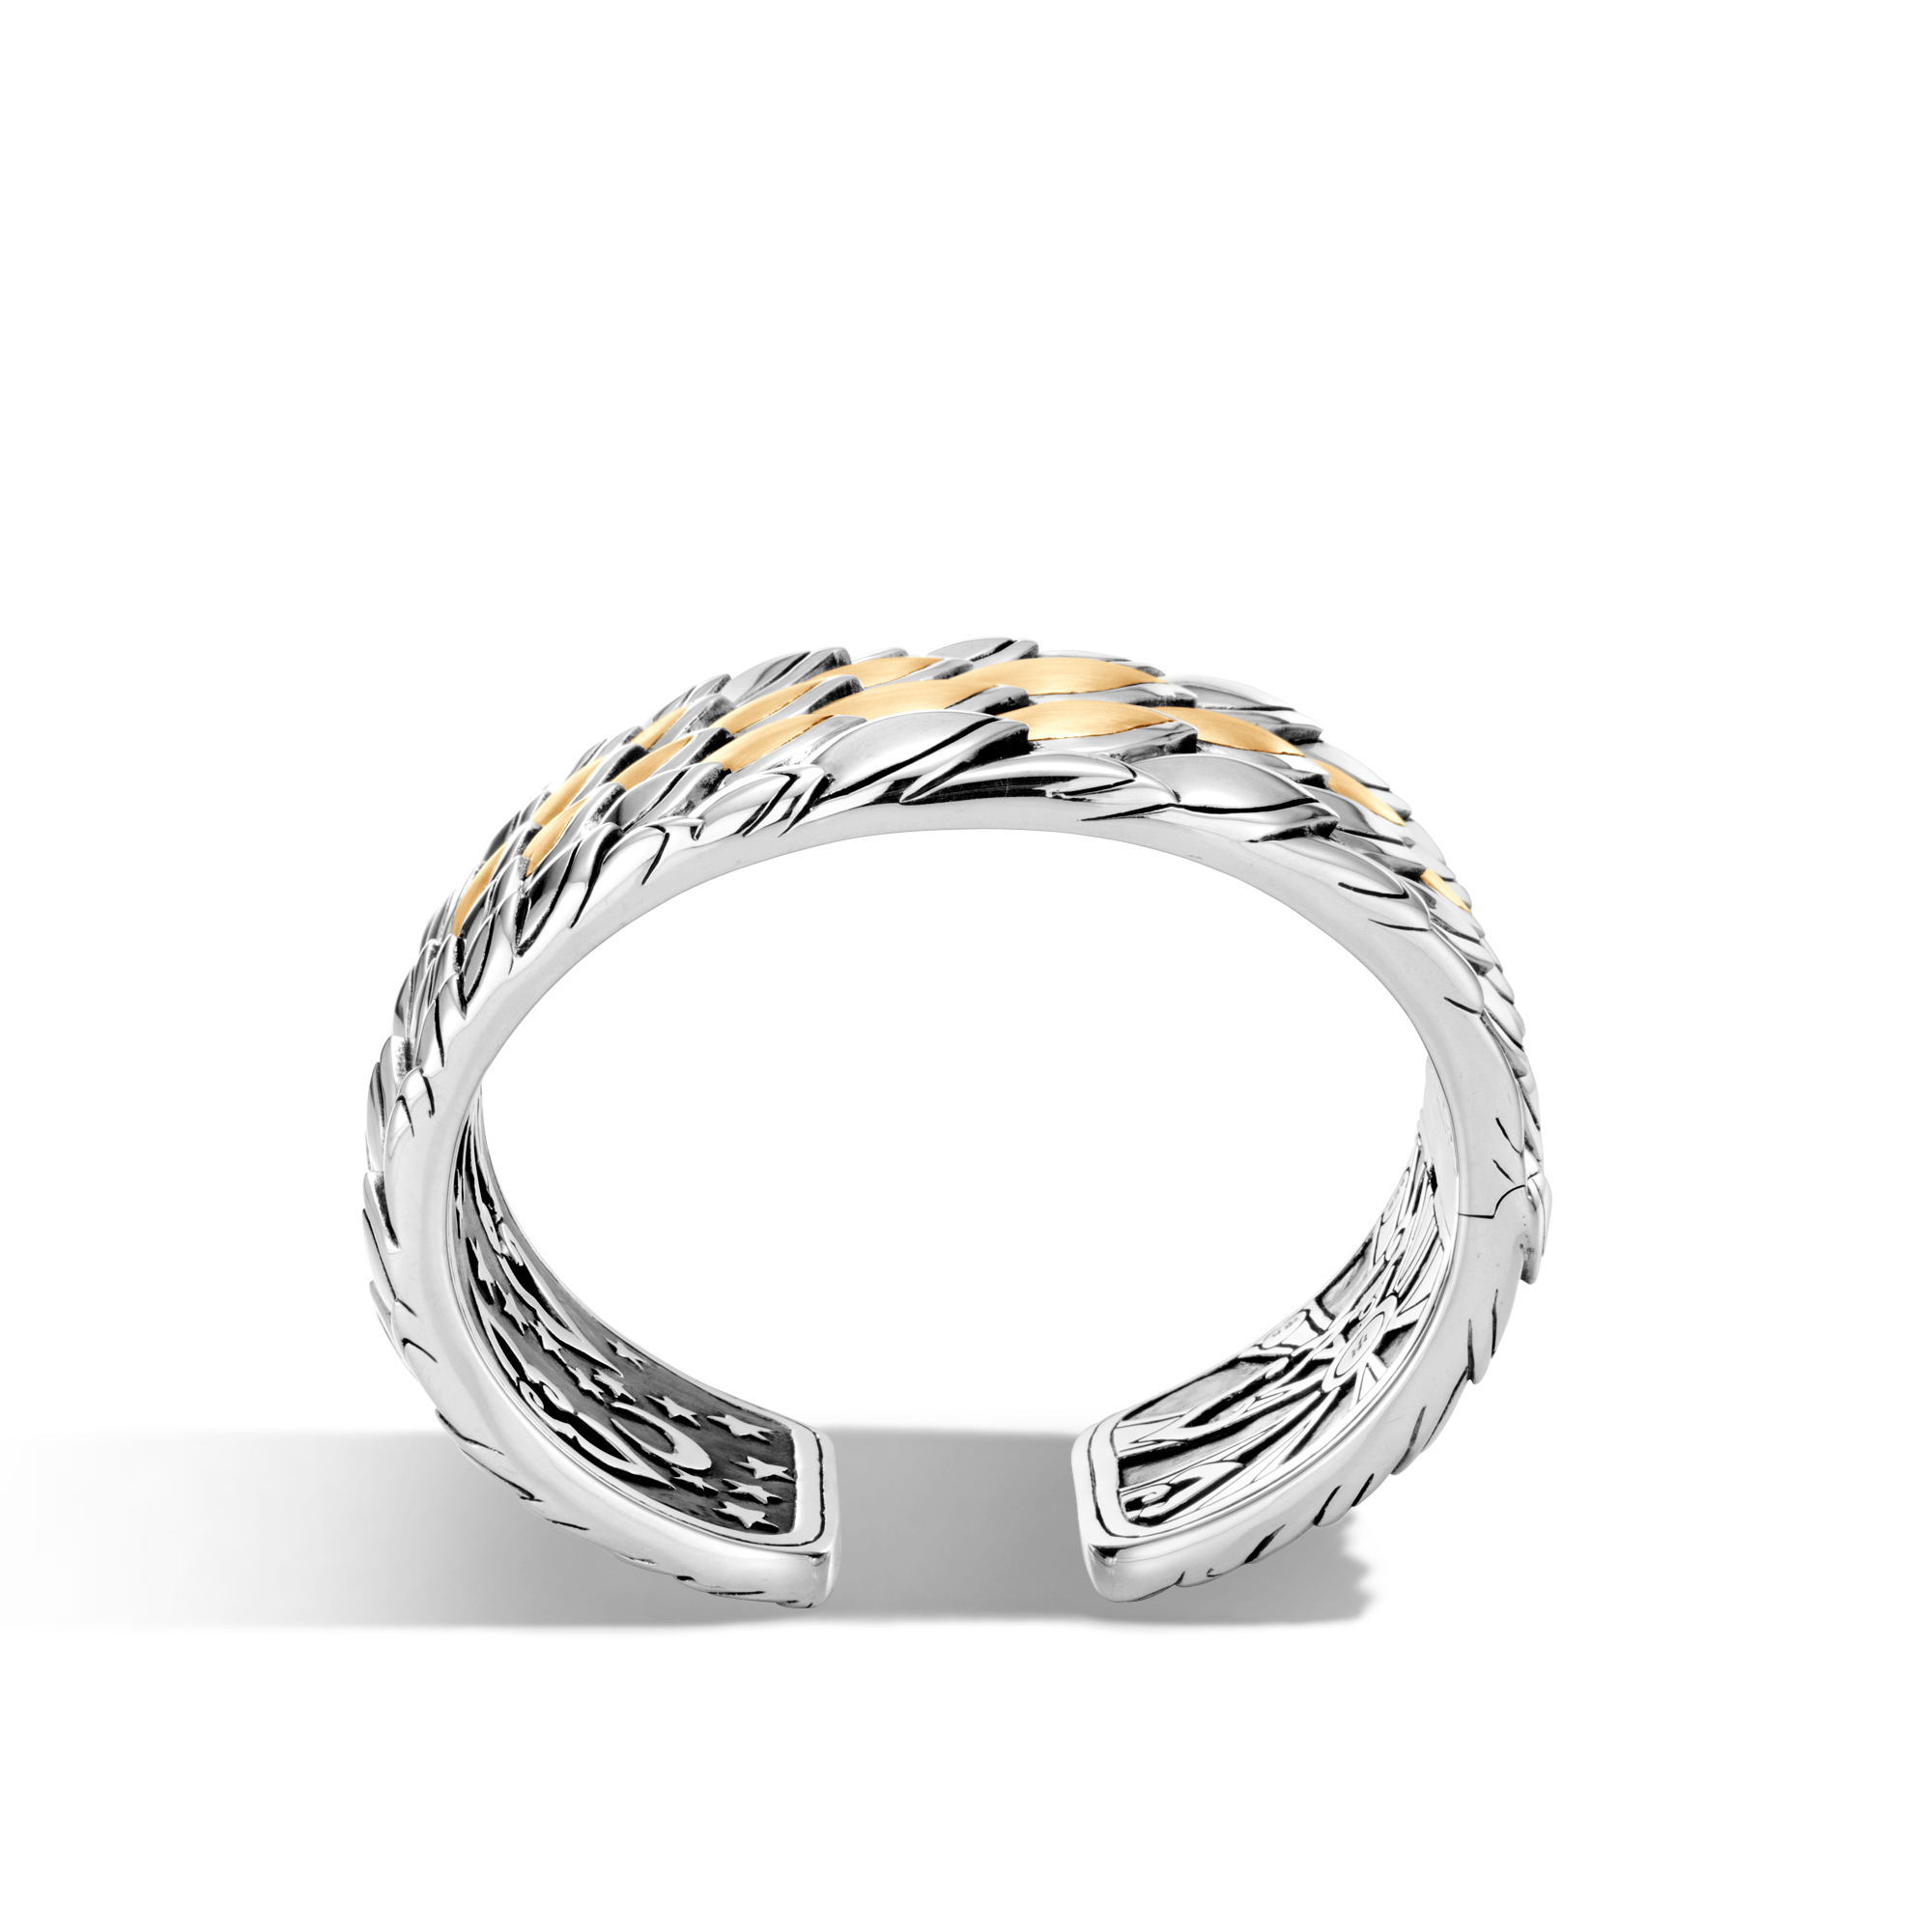 Legends Naga 40mm Kick Cuff in Silver and Brushed 18K Gold, , large